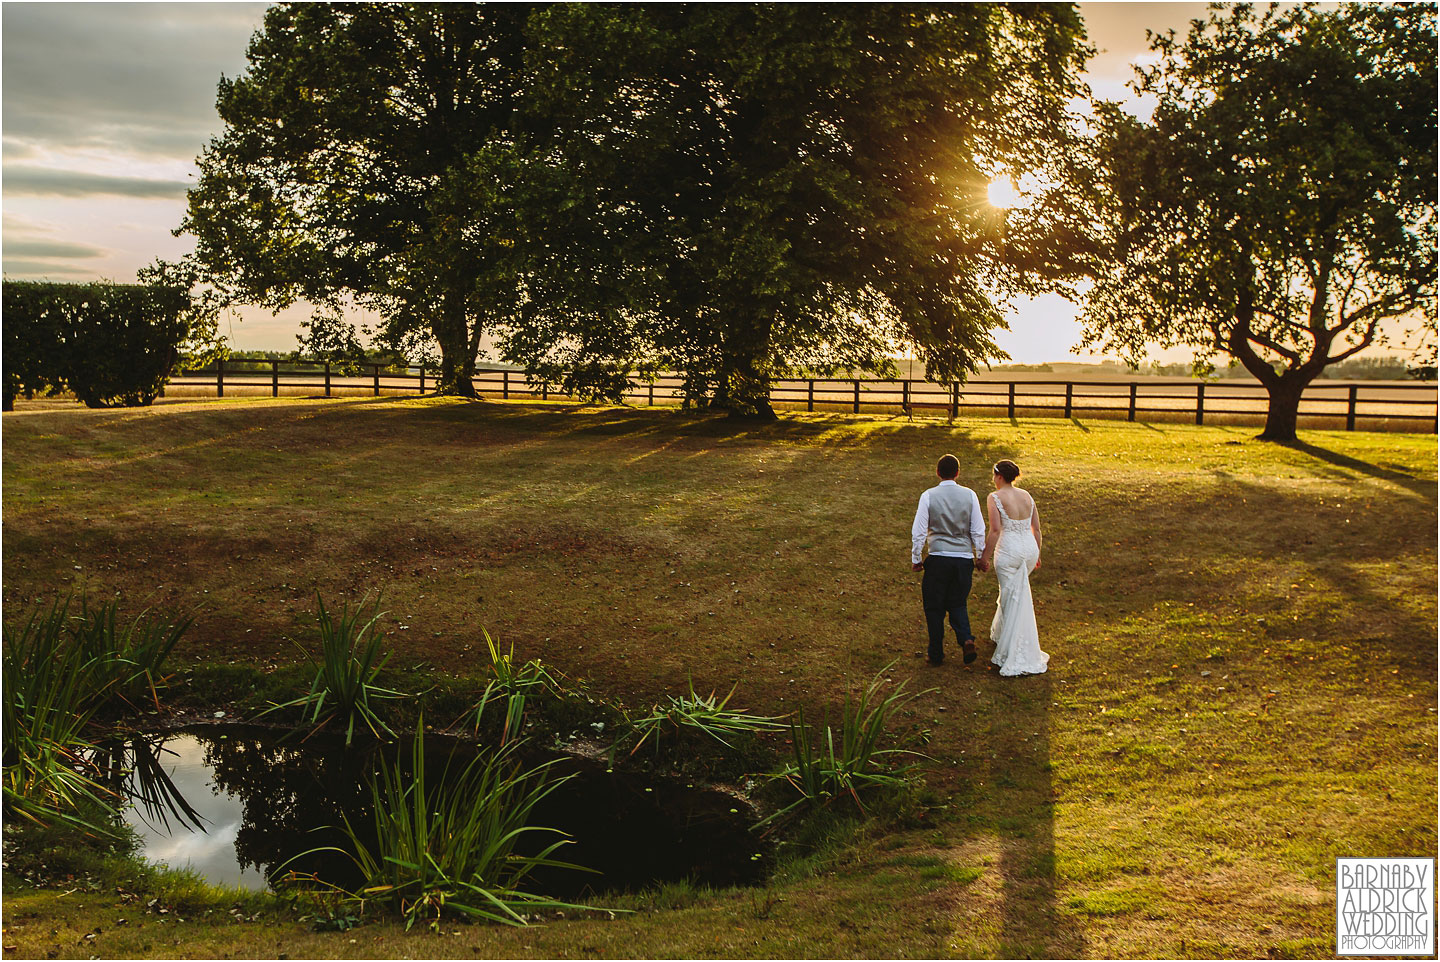 Sunset wedding photos at Barmby Farm Barns in East Yorkshire, Amazing Yorkshire Wedding Photos, Best Yorkshire Wedding Photos 2018